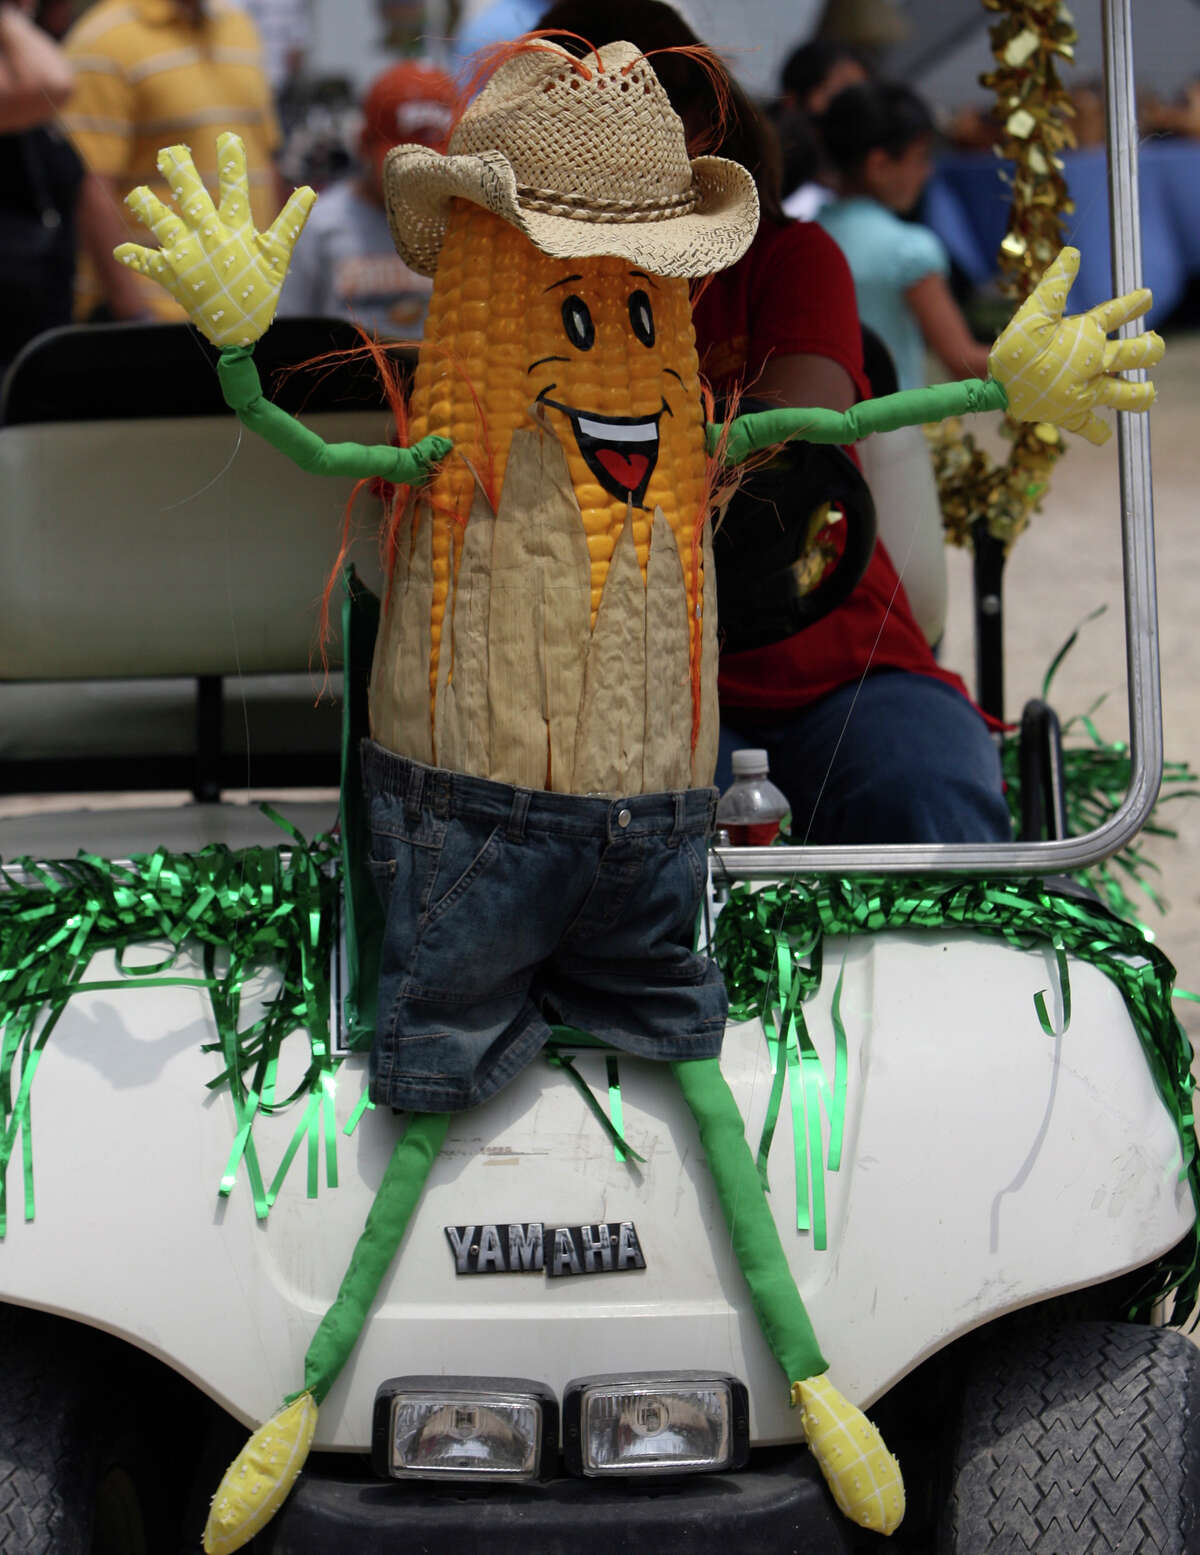 In this 2008 file photo, aCornyval Festival worker drives a golf cart with a large corn character mounted on the front. After the annual event was canceled in 2020 in response to the coronavirus pandemic, it is set to return next month.